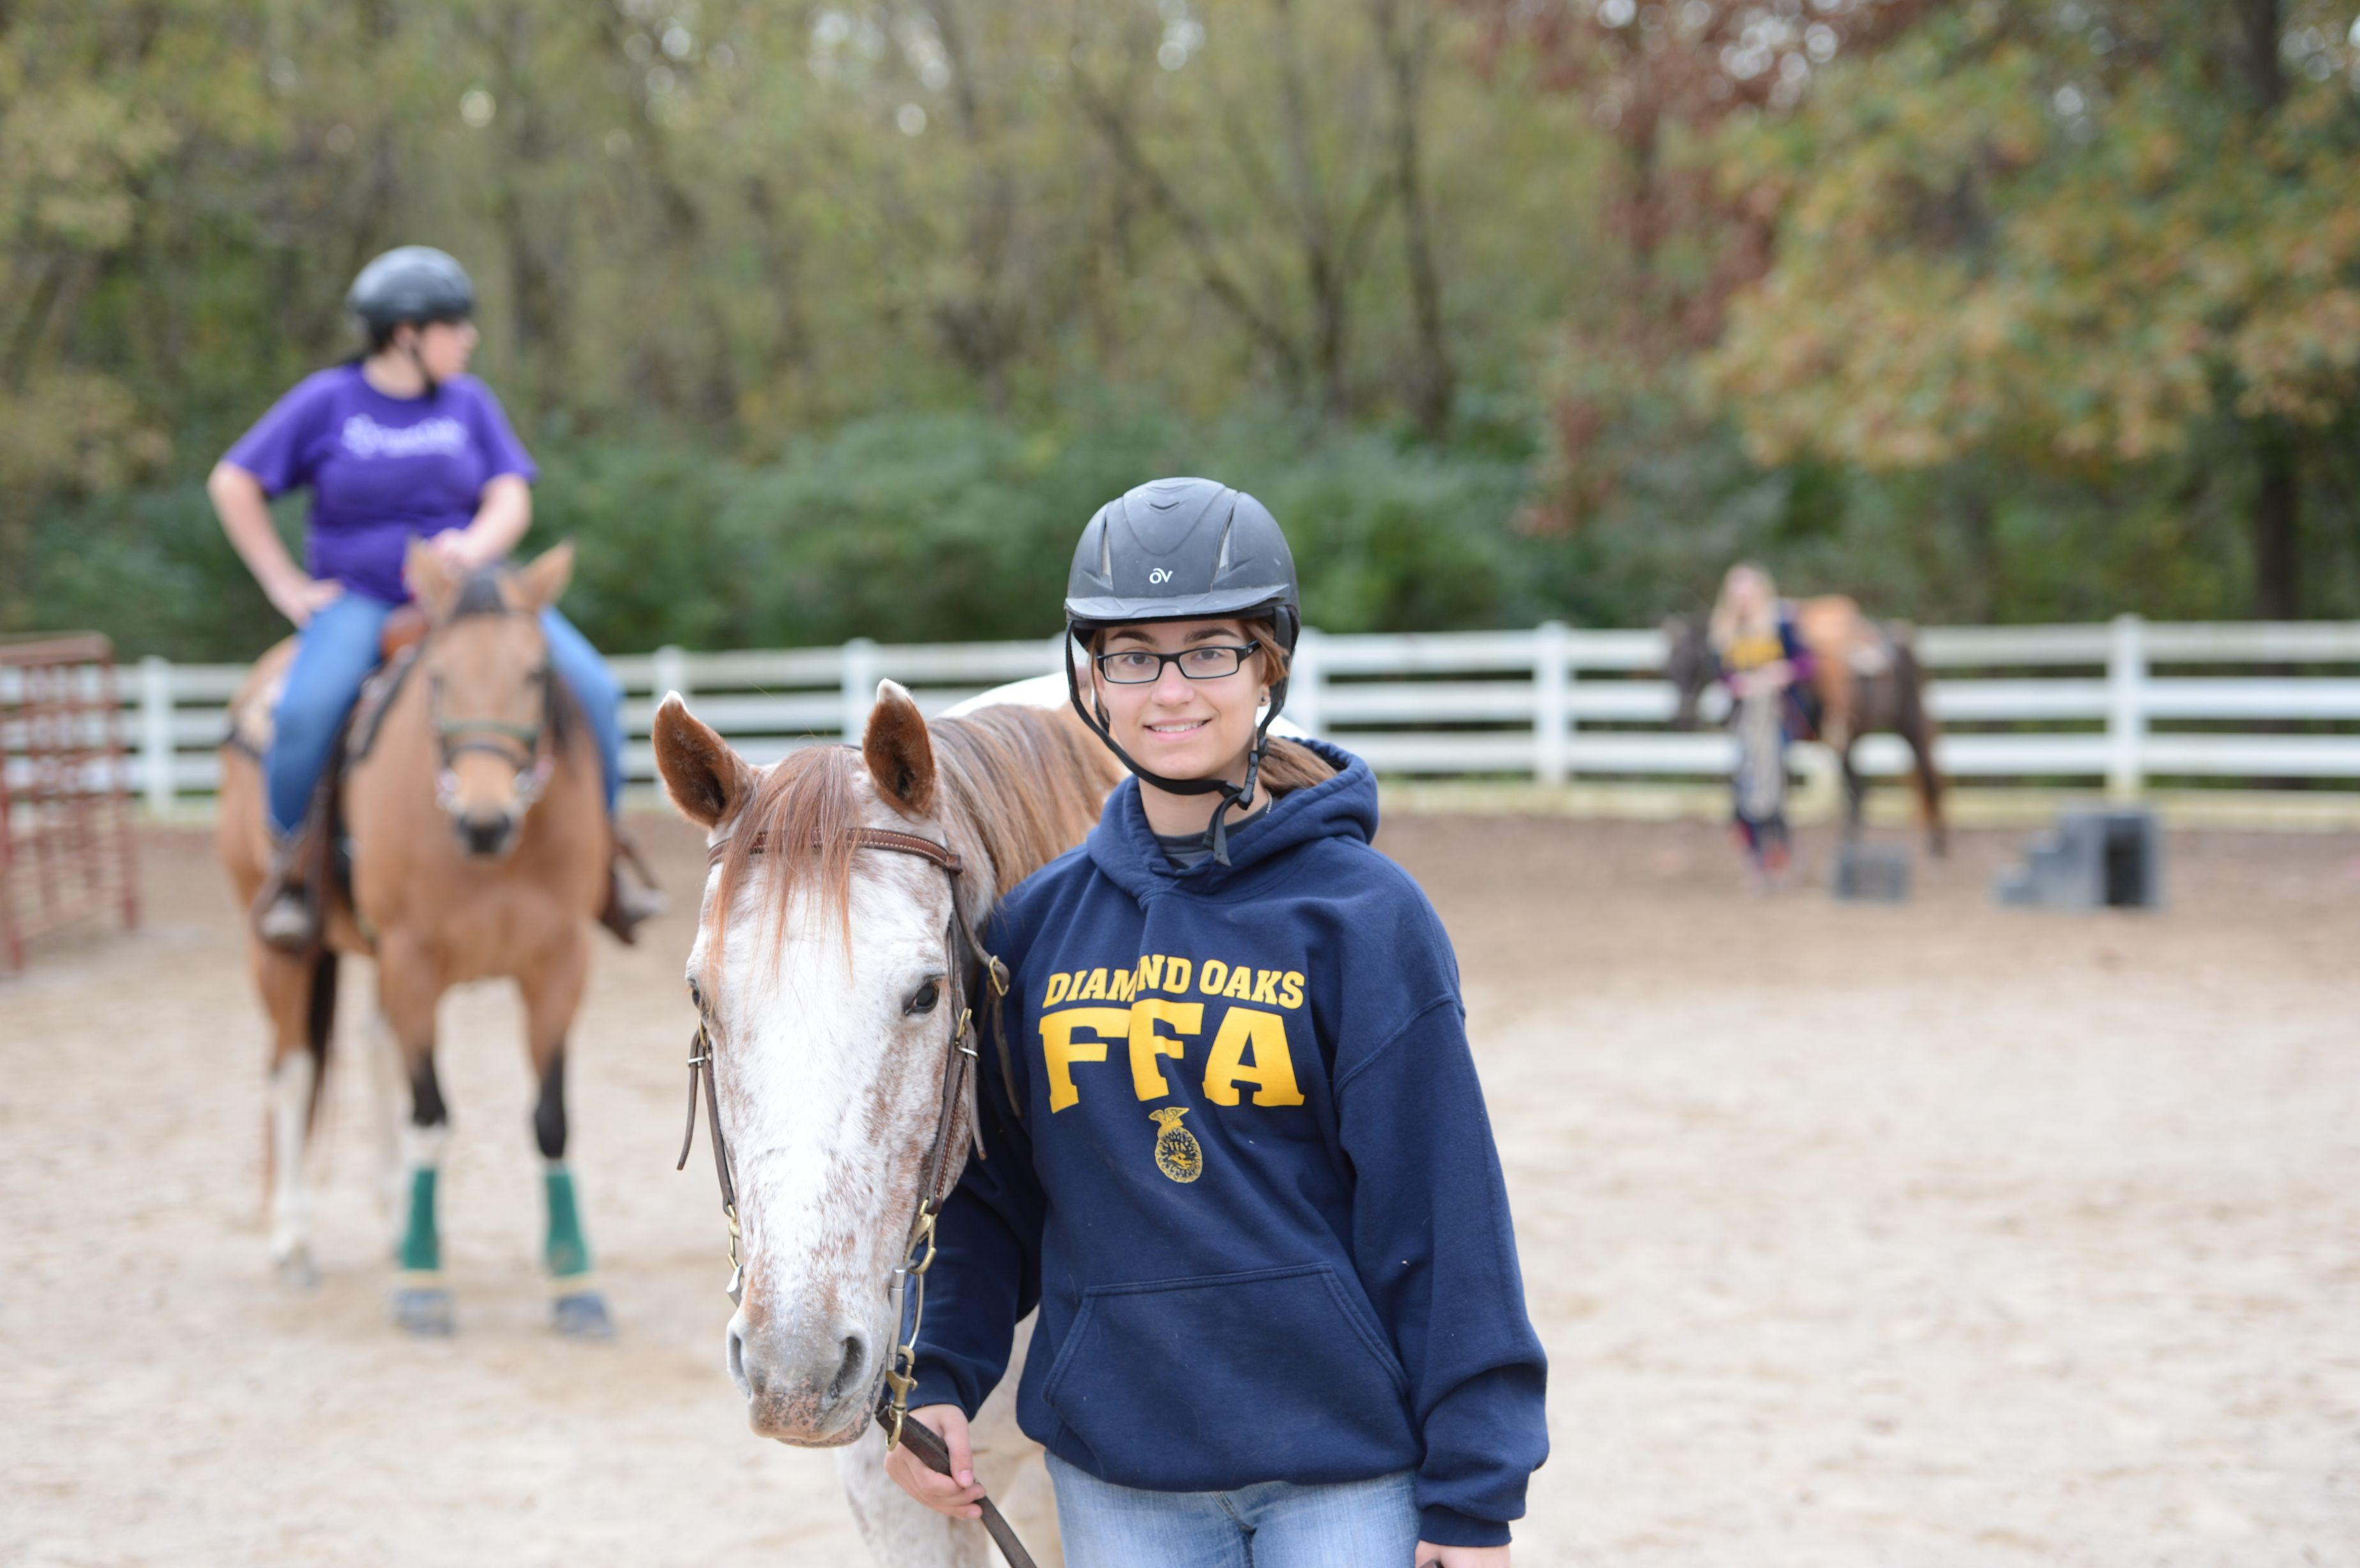 Great Oaks Equine Science Management For High School Students Learn To Develop Riding Techniques Practice Technique Equines Science High School Students